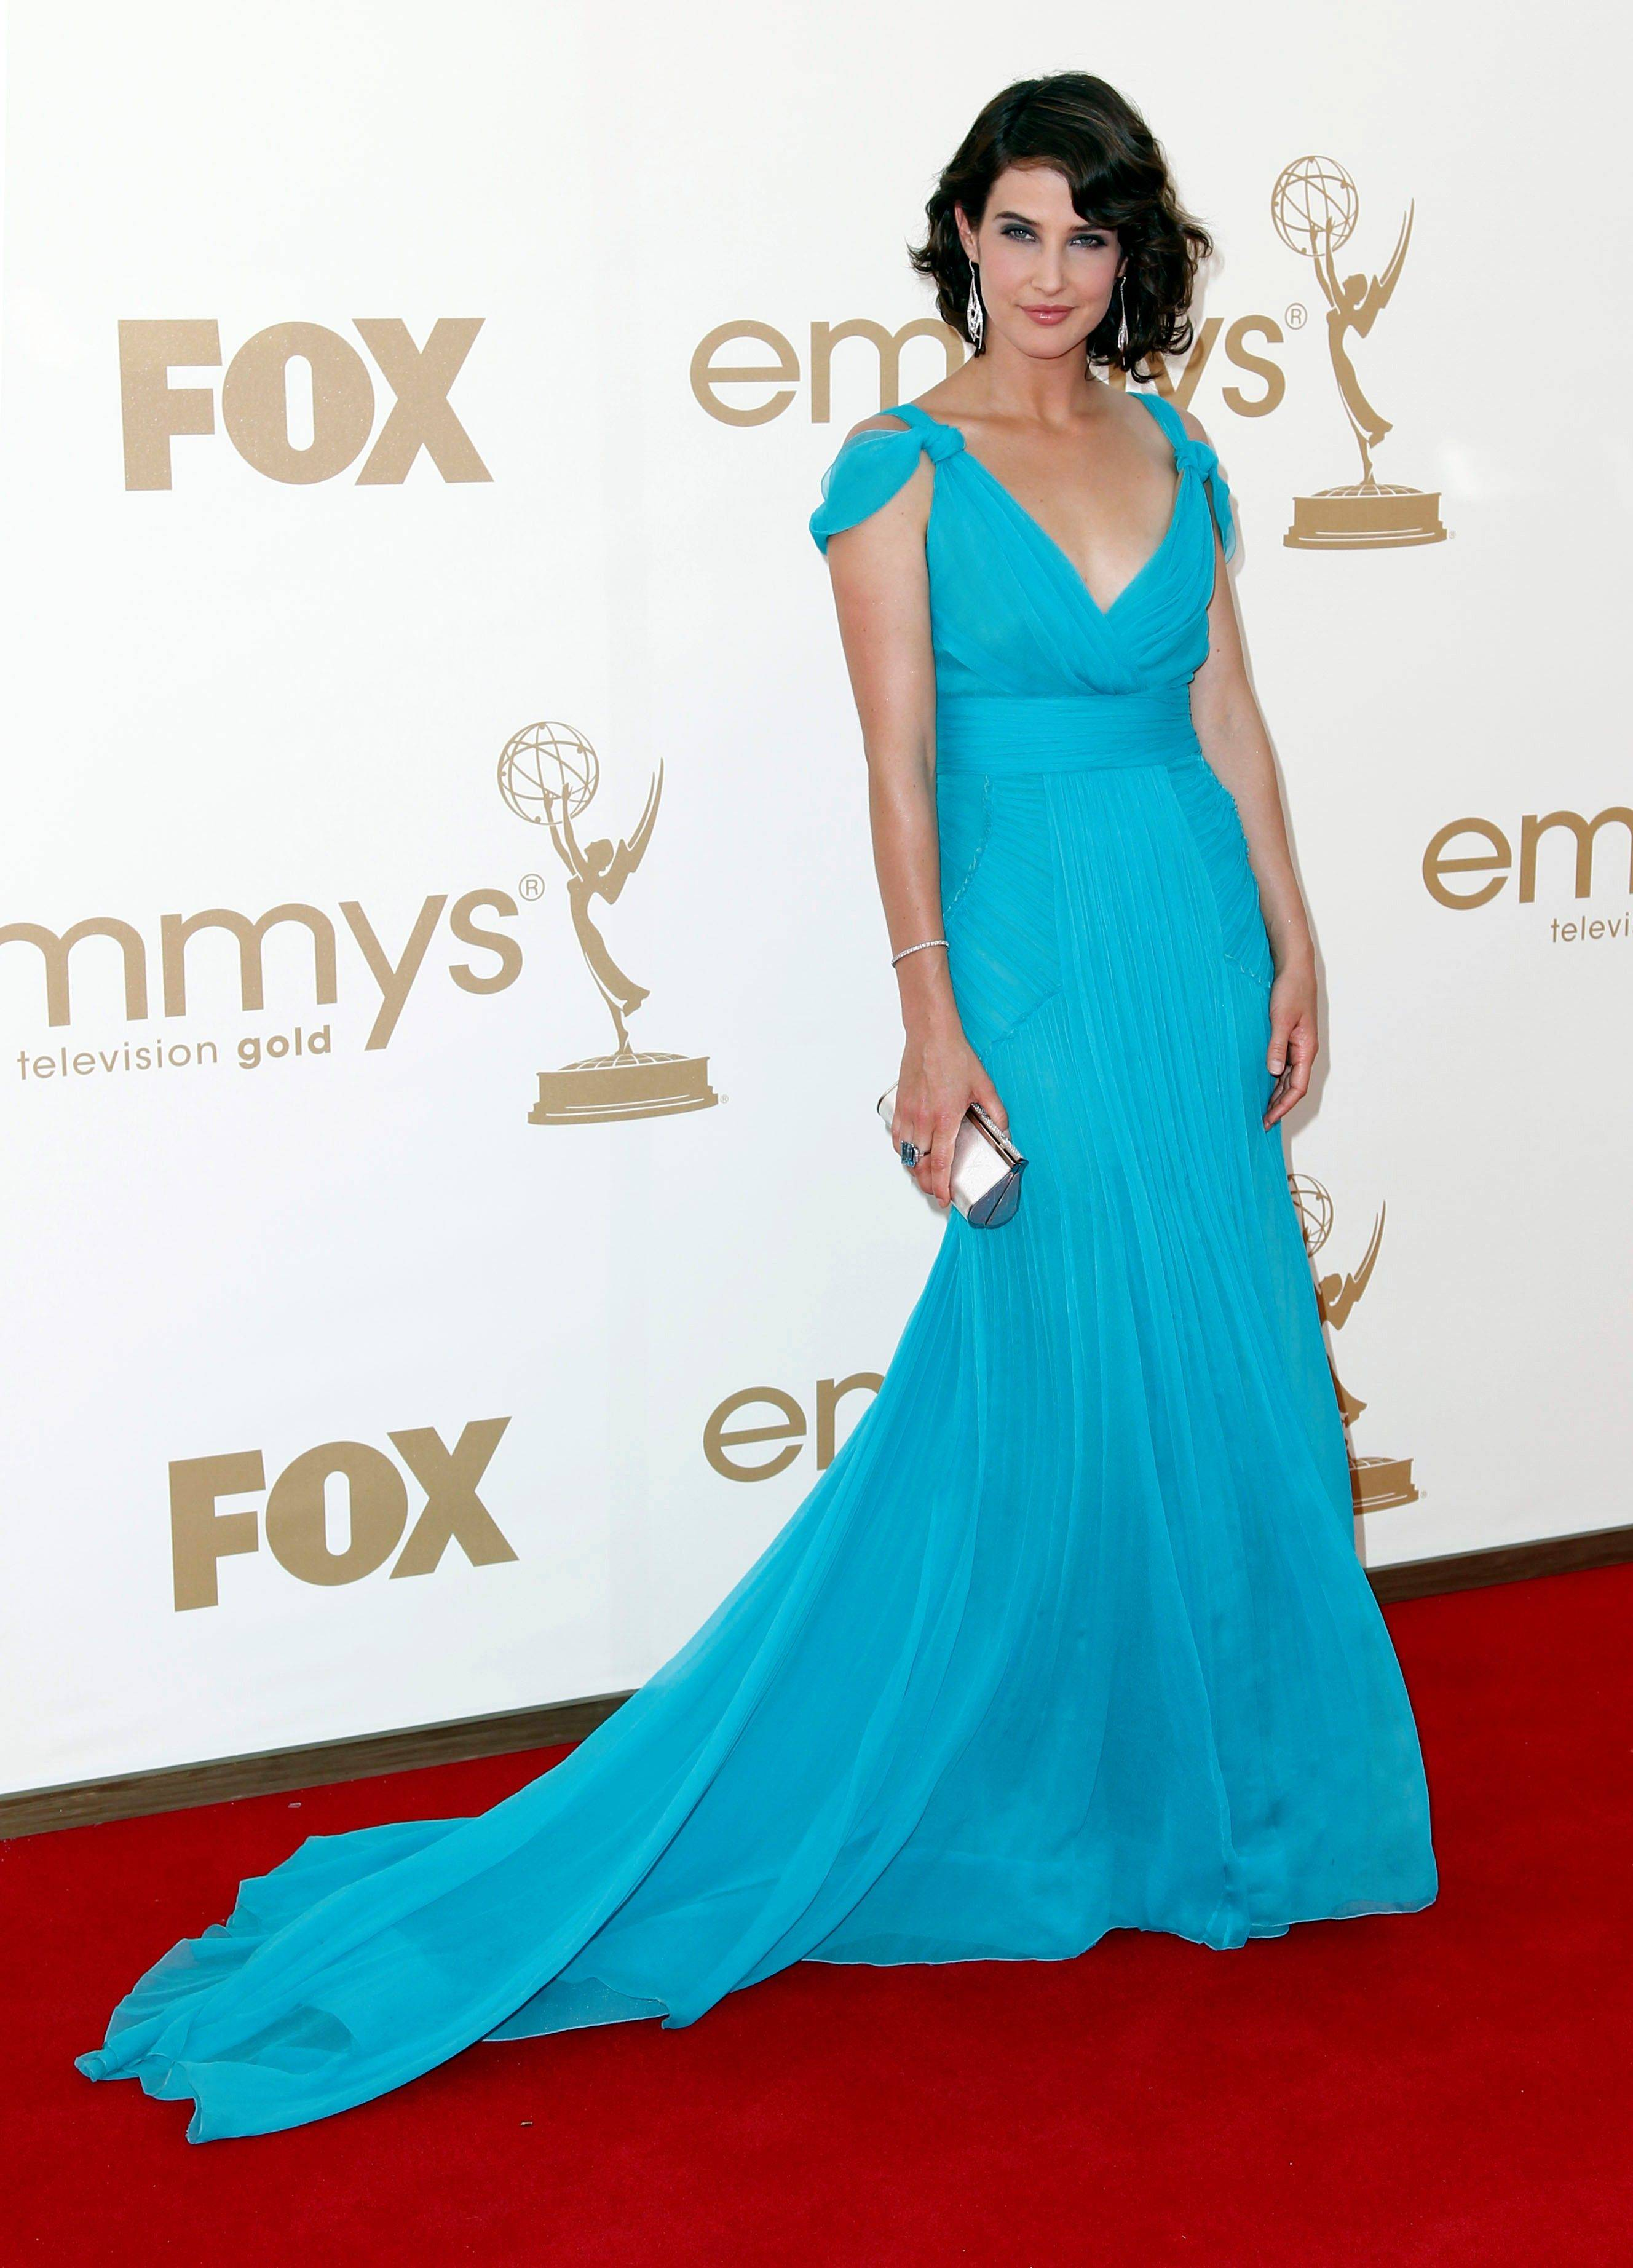 """How I Met Your Mother"" star Cobie Smulders stands out on the red carpet as the only star to don a bright blue gown."